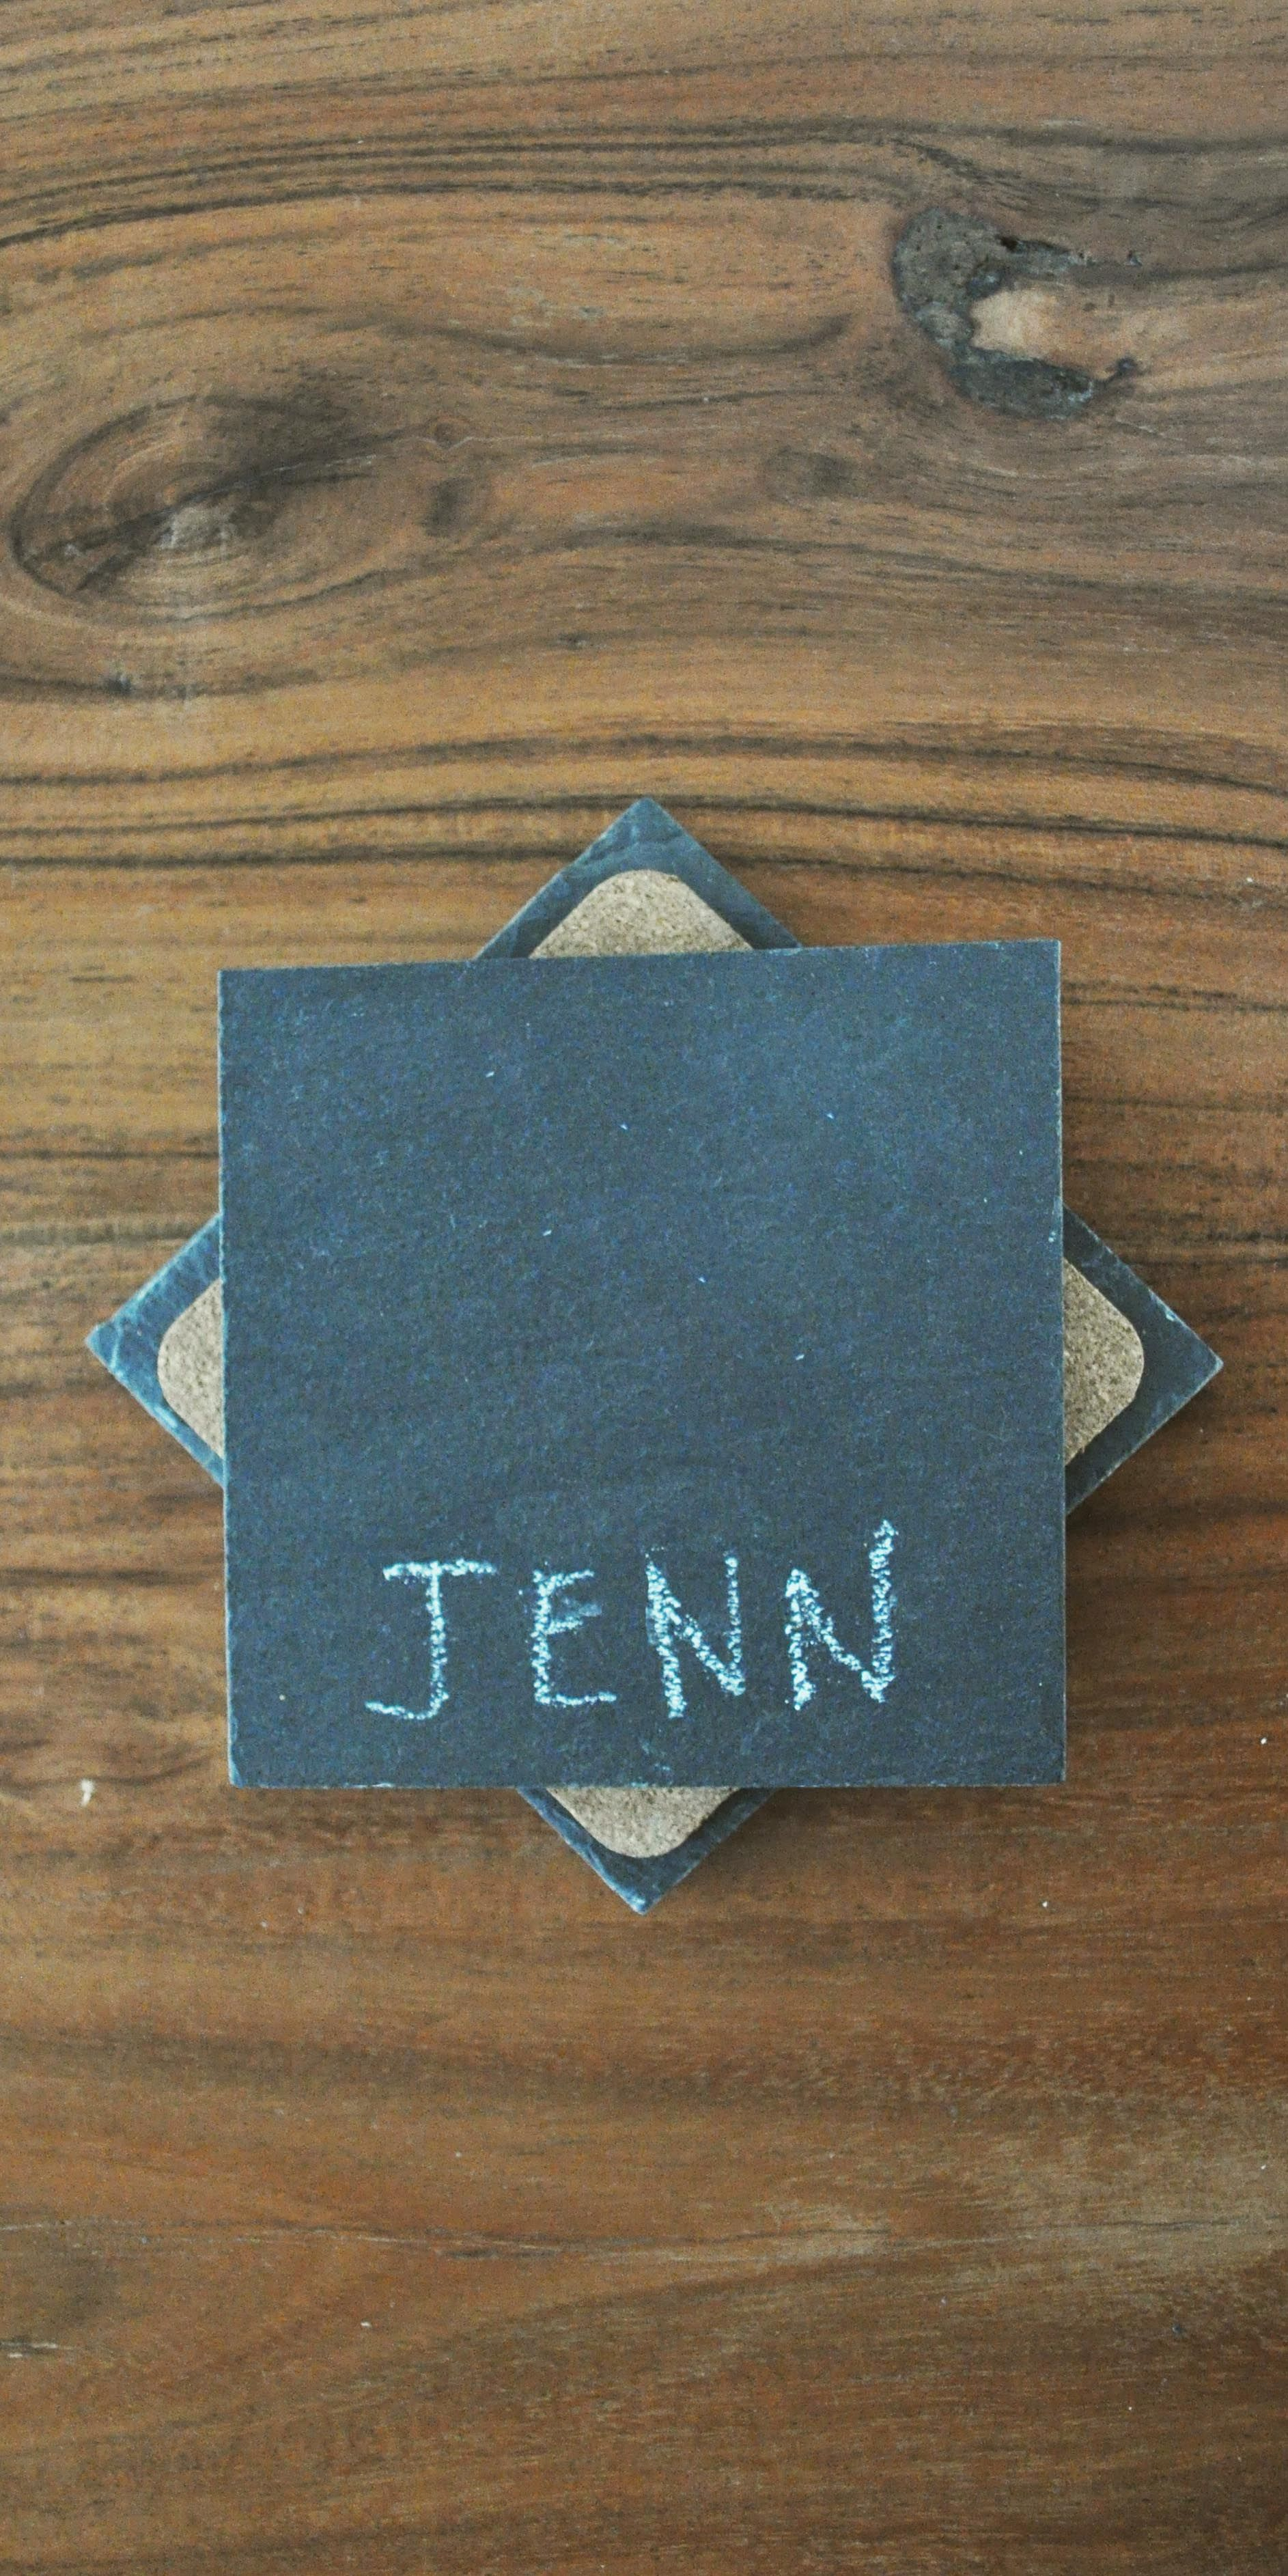 Stop mixing up drinks at your next party with these chalkboard slate coasters. Simply write your name on the coaster and never lose your drink again!